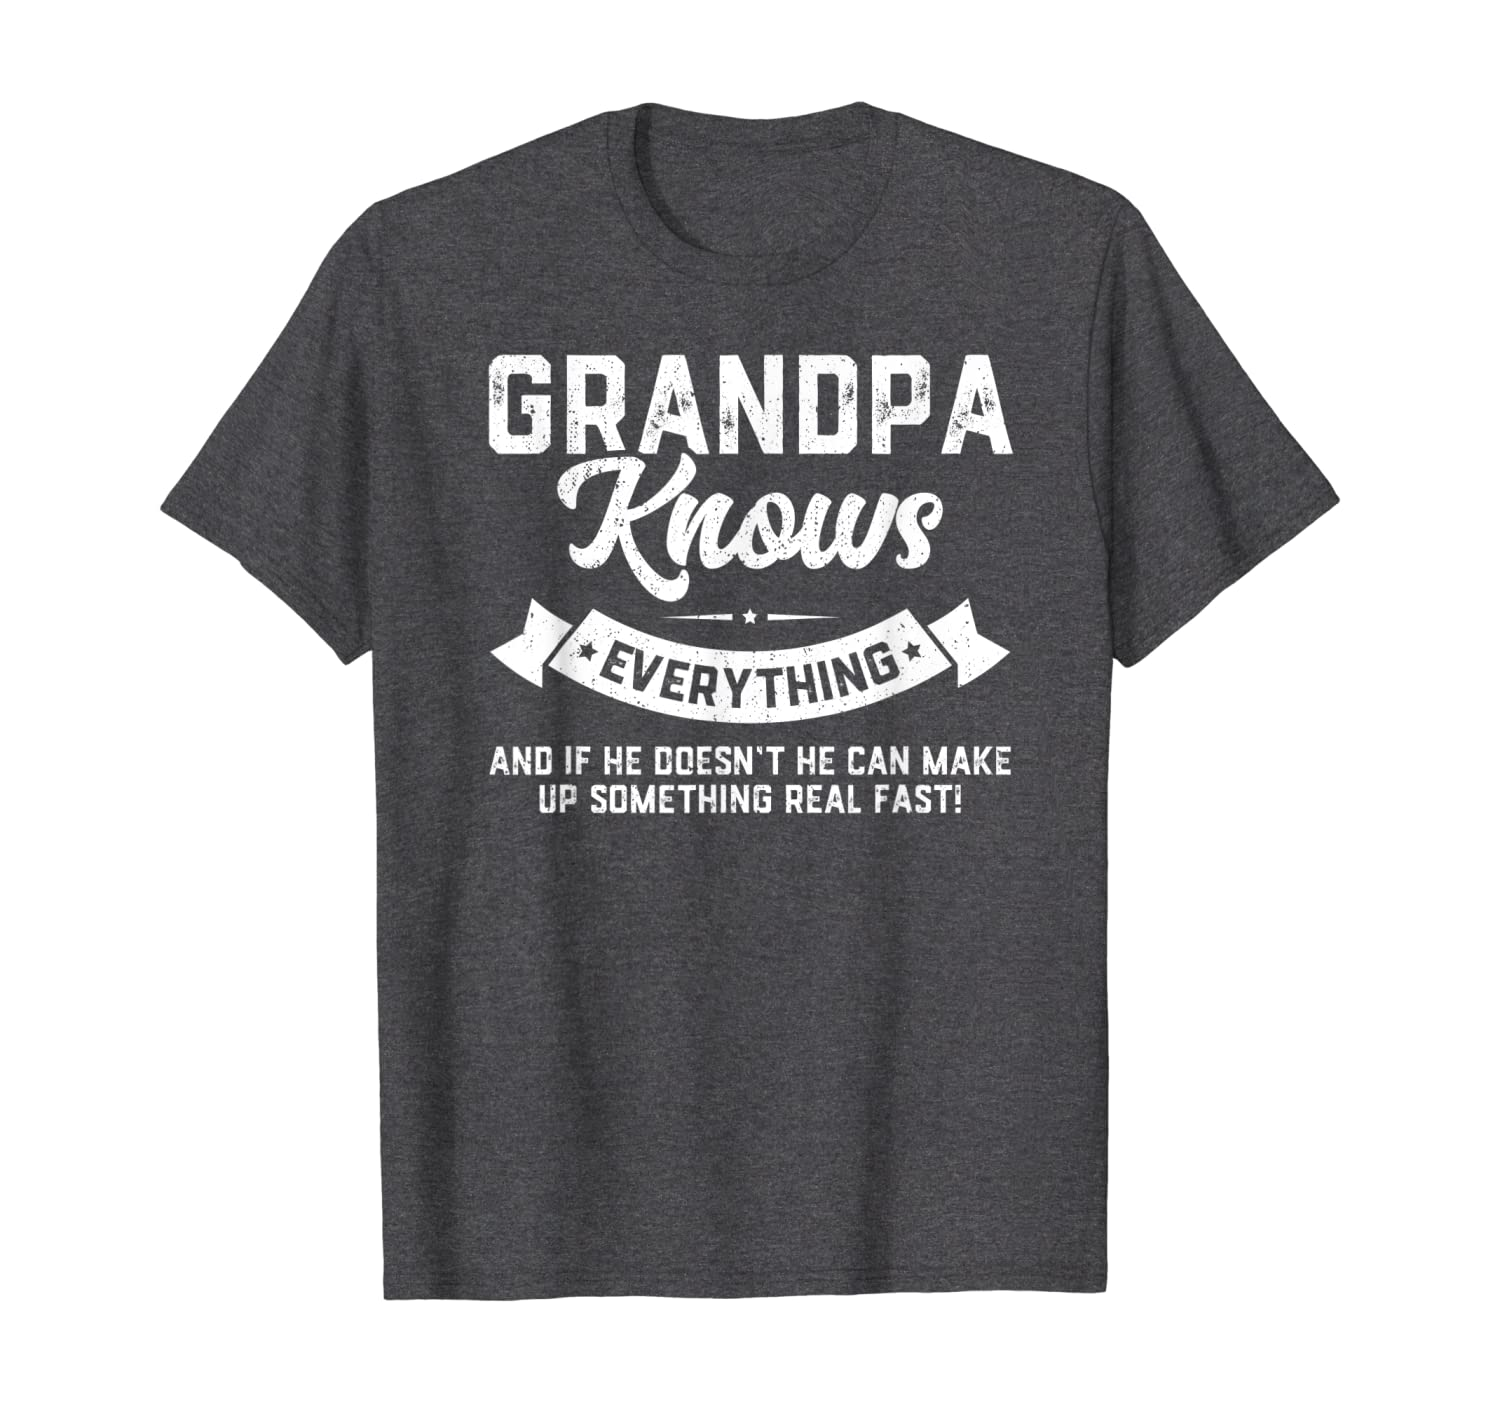 Mens Grandpa Knows Everything Shirt 60th Gift Funny Fathers Day T-shirt - Dad T Shirts Up To 5xl